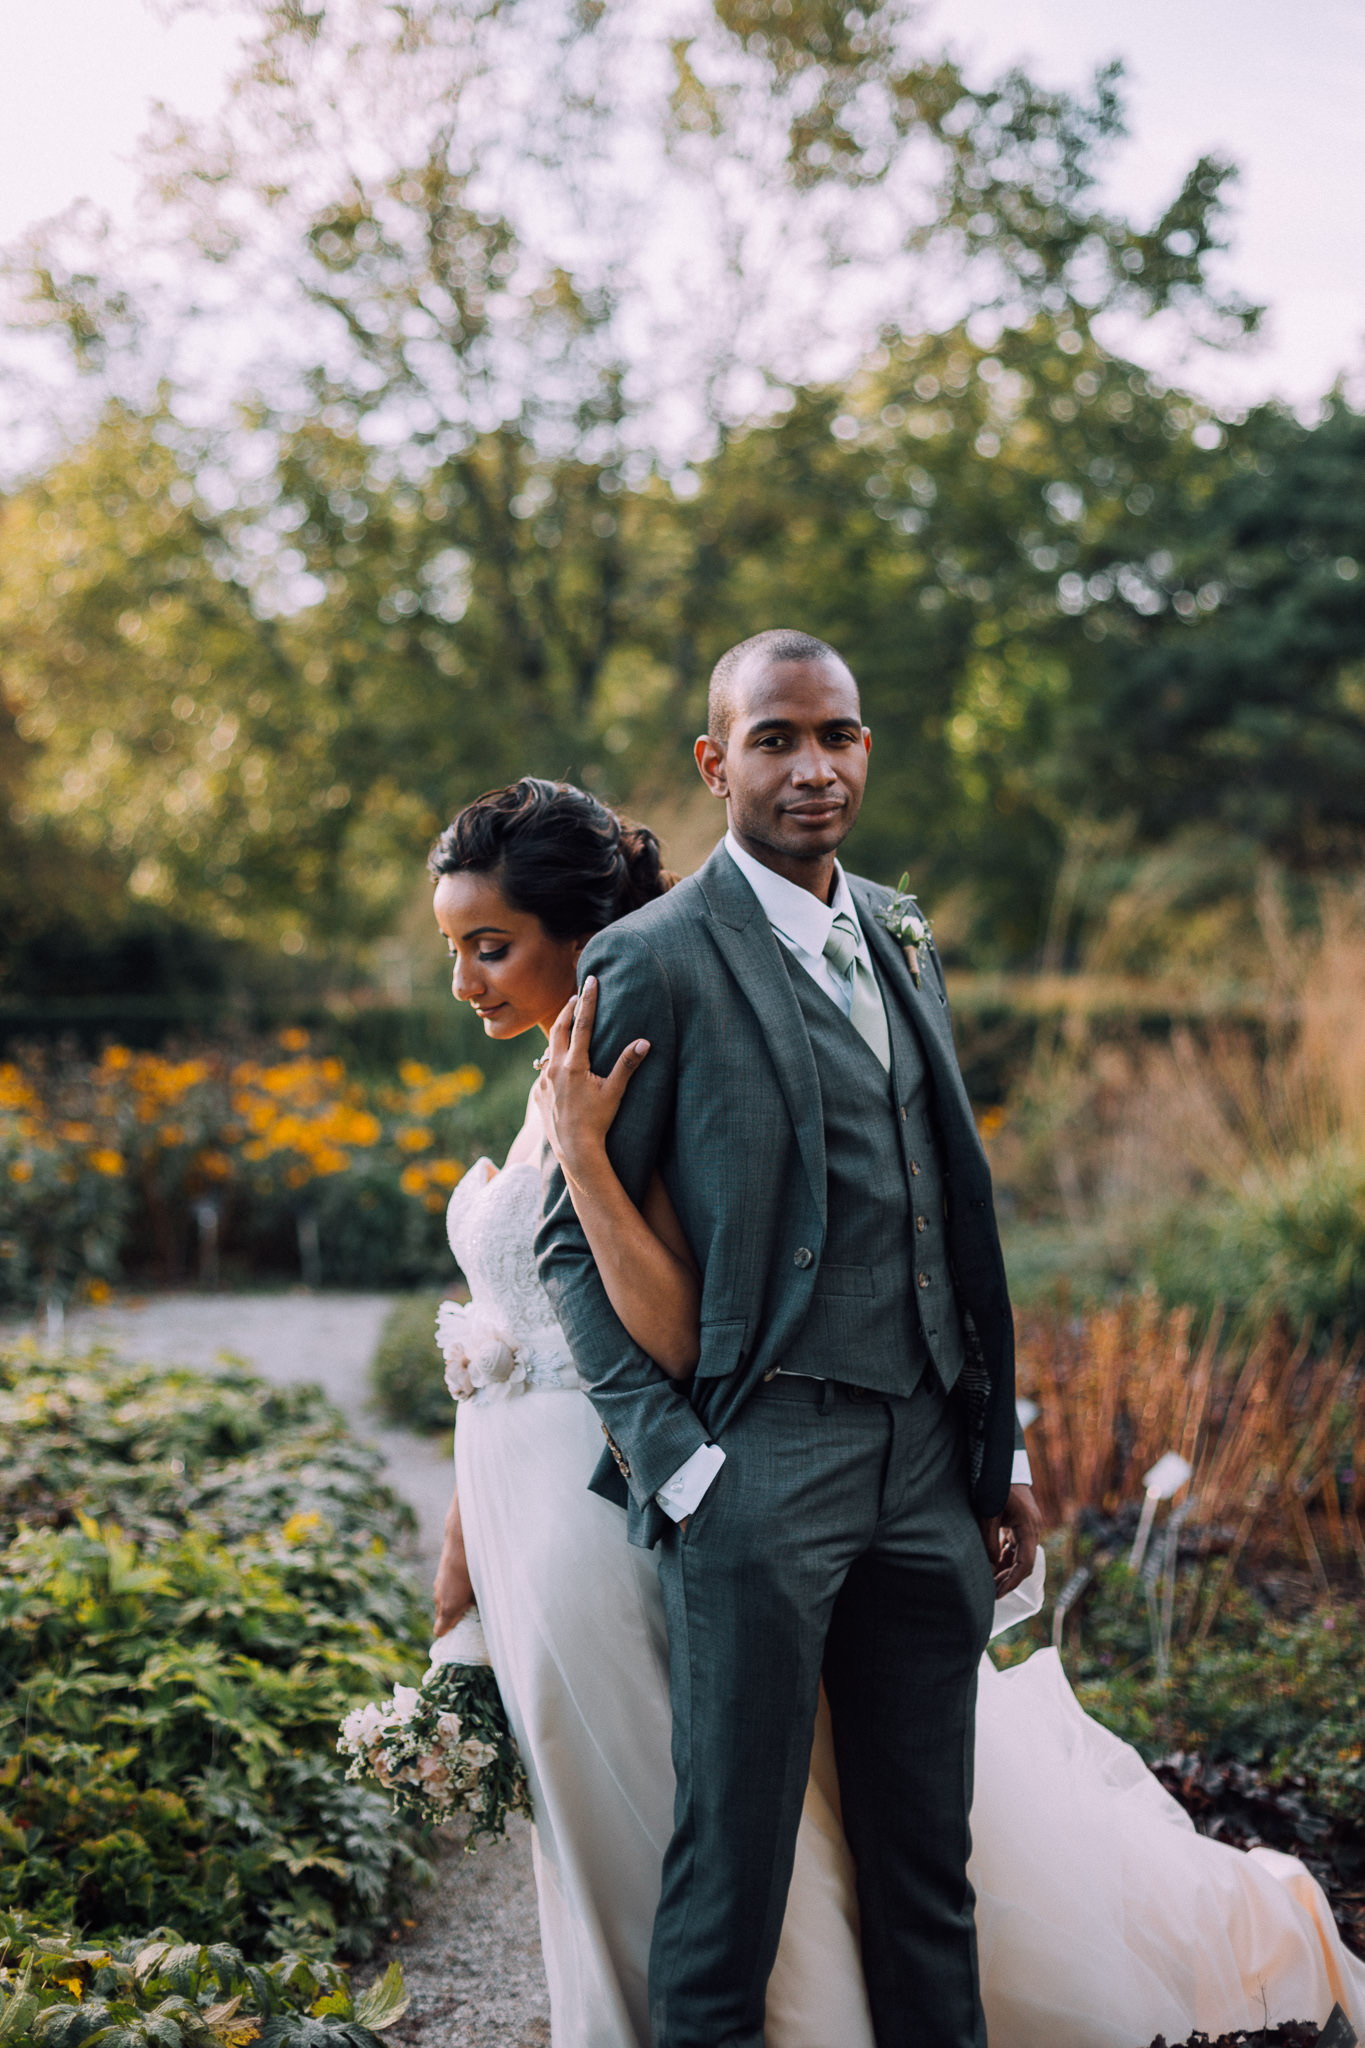 Burlington Fall wedding at Royal Botanical Gardens by Max Wong Photo (43)